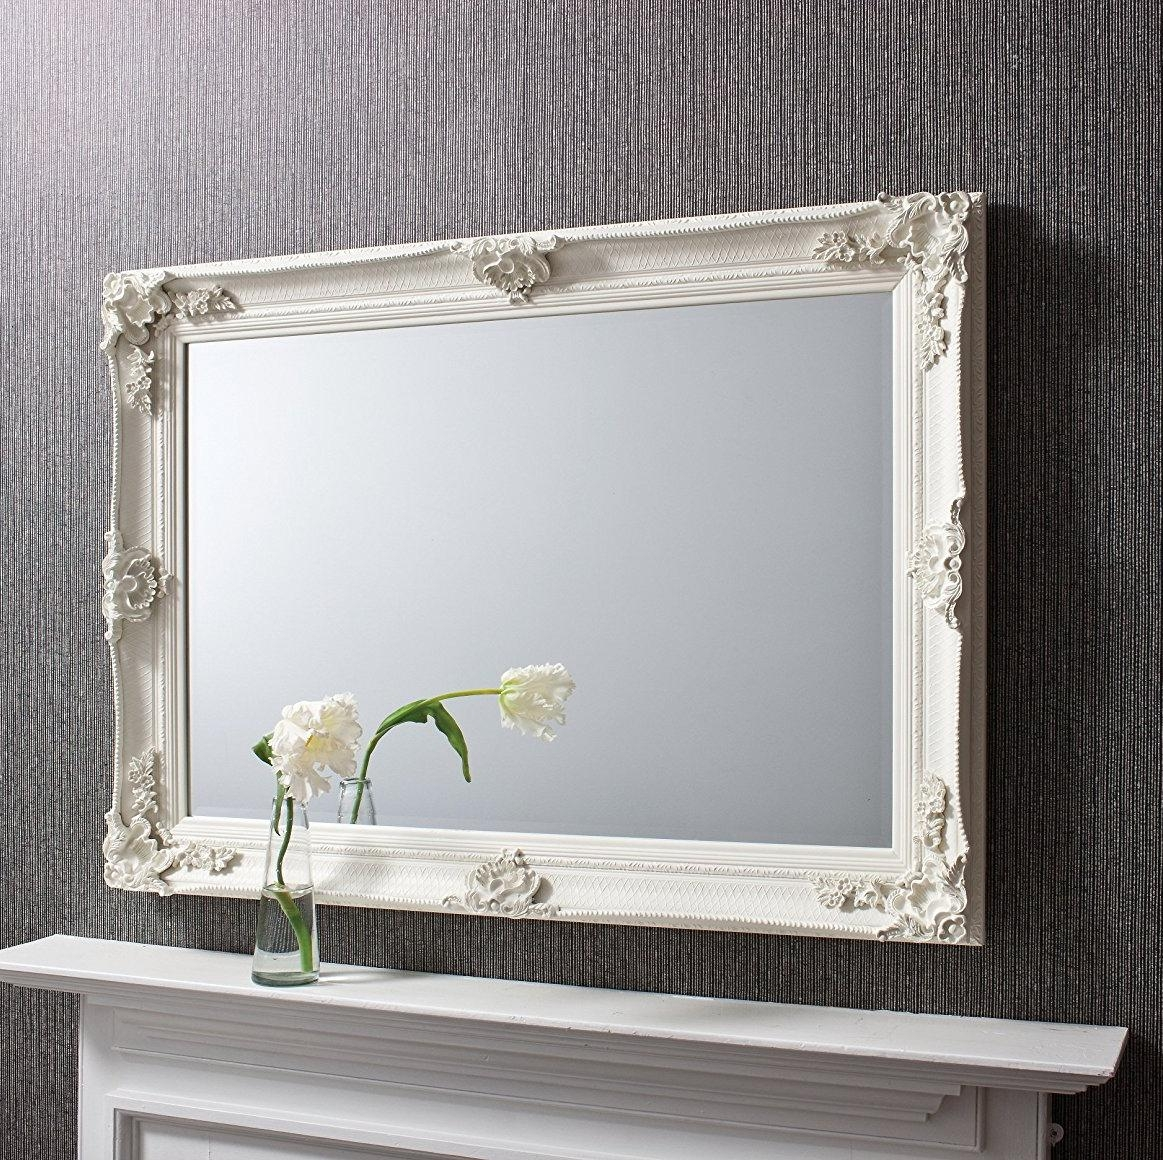 Decorative Mirrors | Exclusive Mirrors Intended For Oval Cream Mirror (Image 6 of 20)